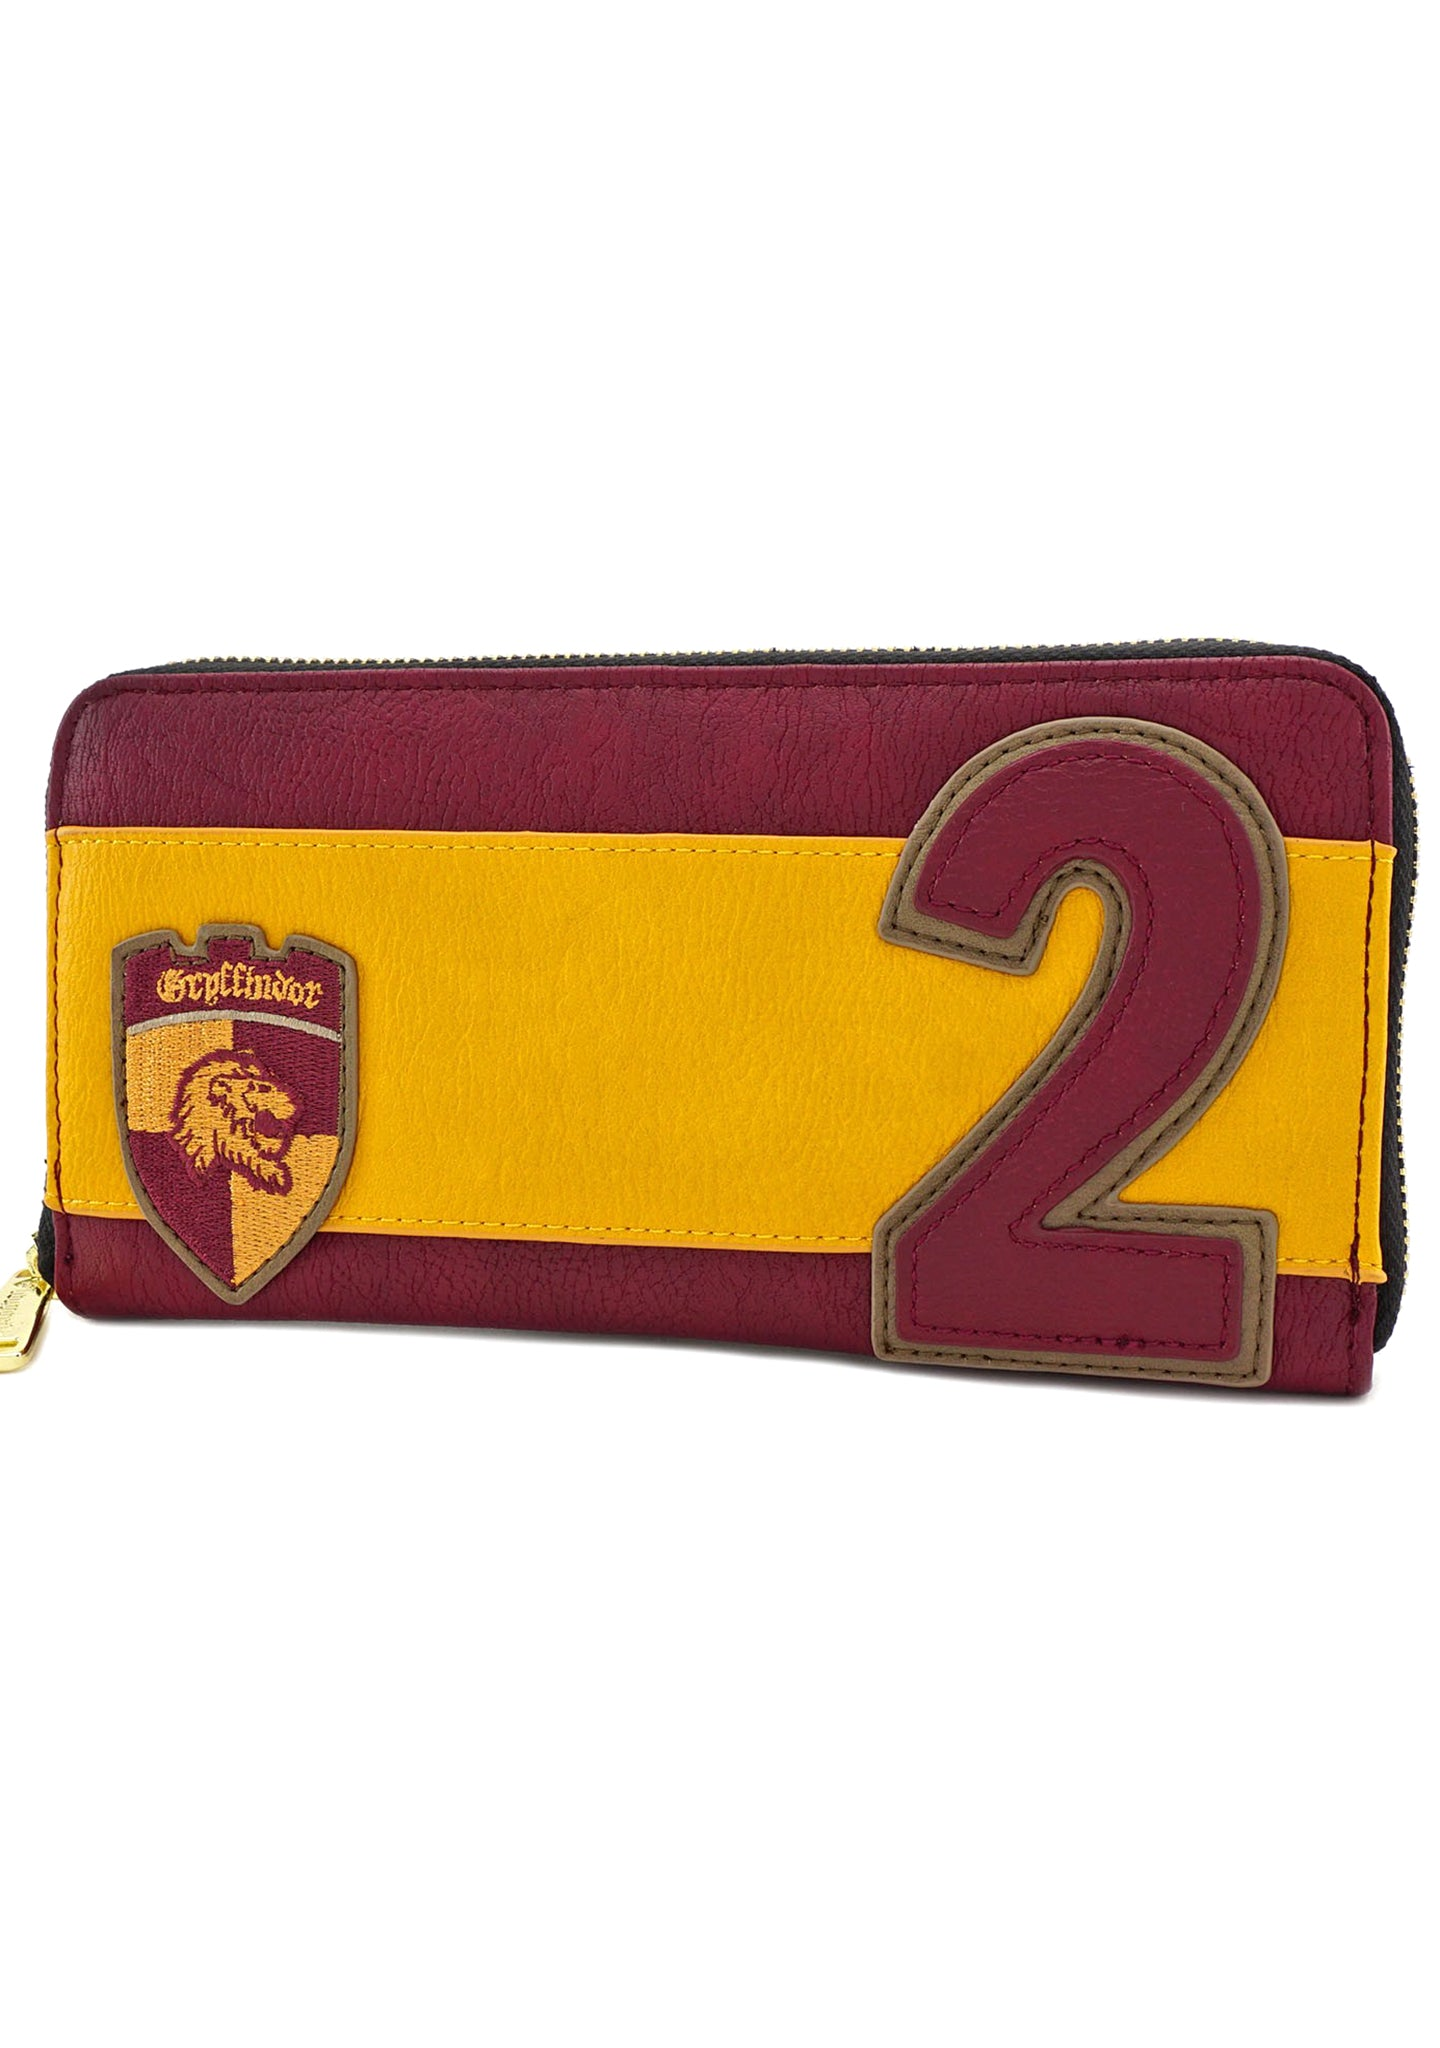 Loungefly X Harry Potter R. Weasley Gryffindor Zip Around Wallet